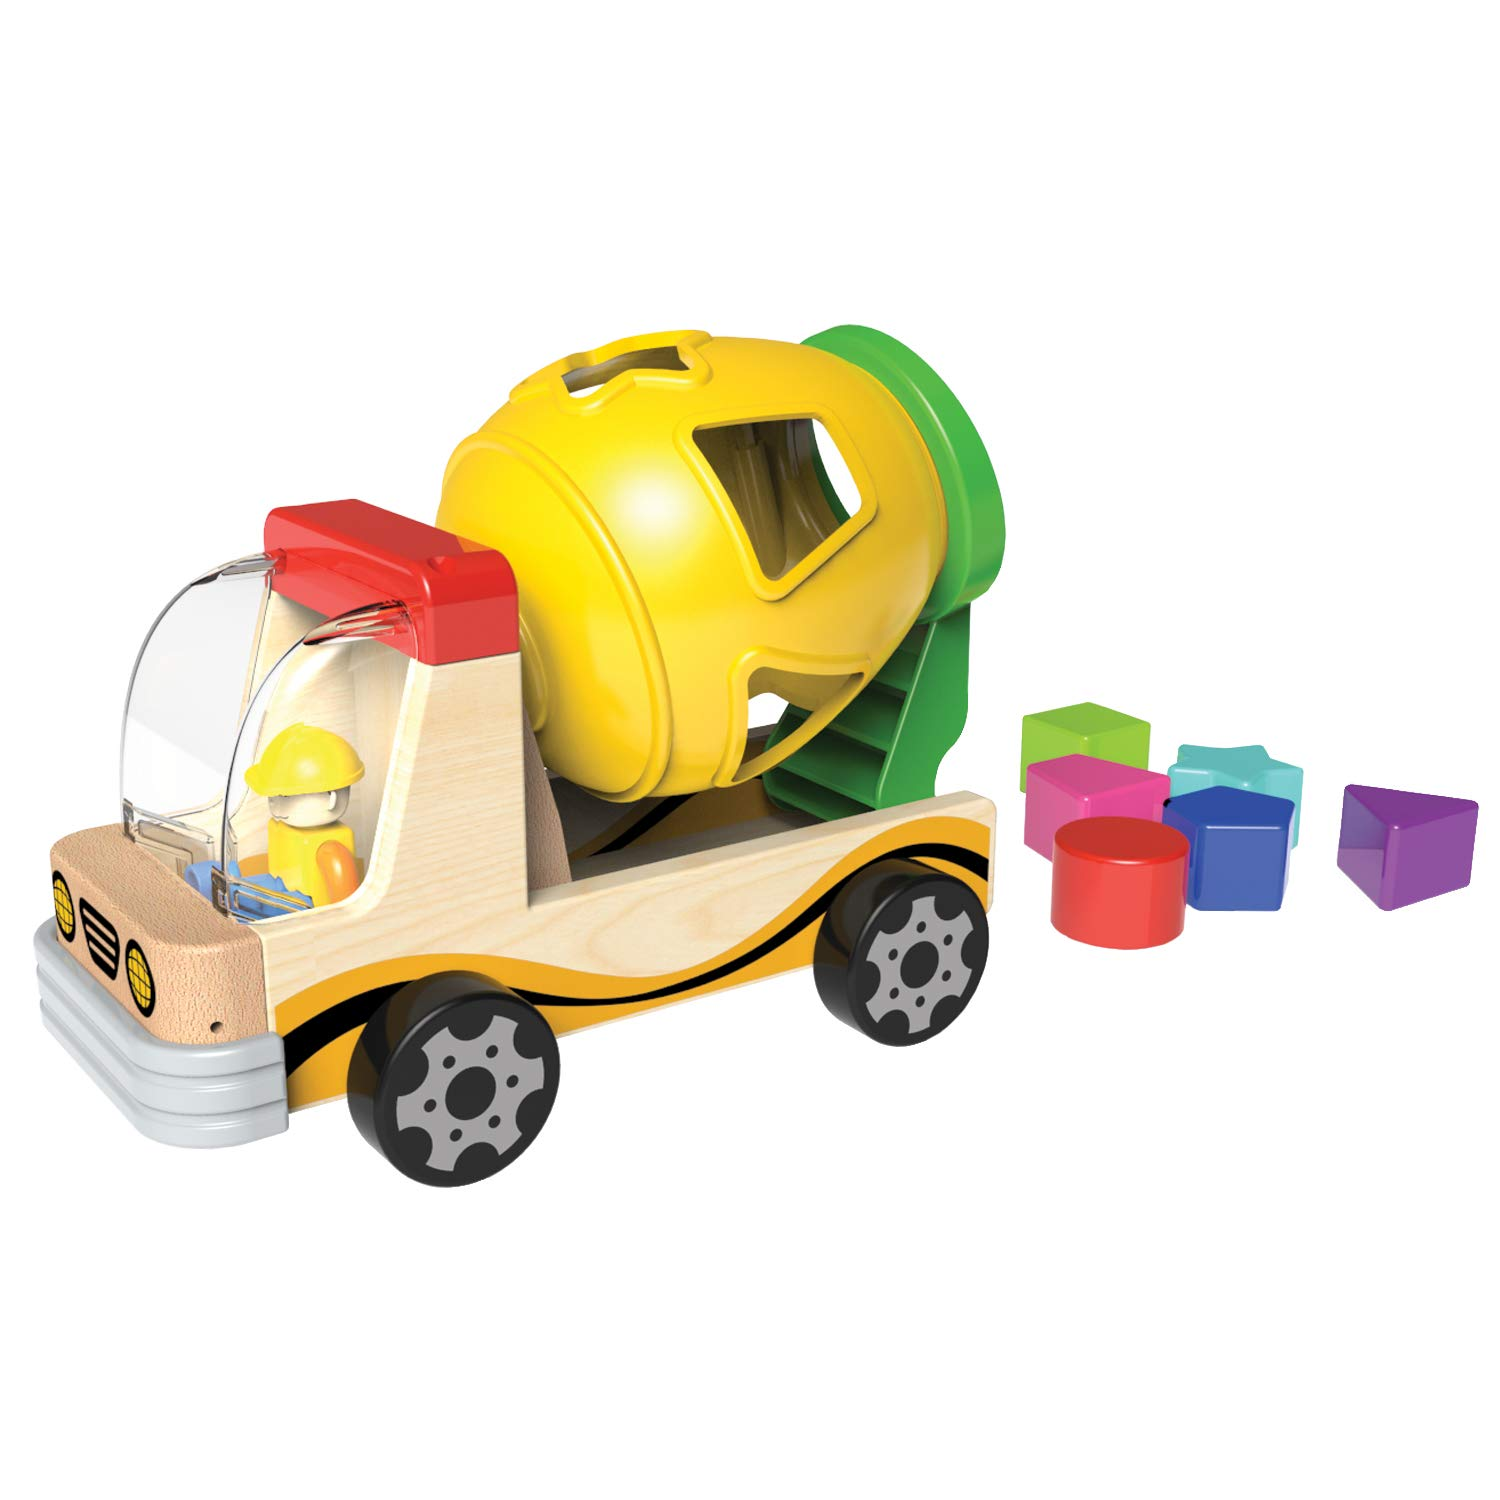 Little Moppet Mixer Truck with Shape Sorter   B07HGCWQN1